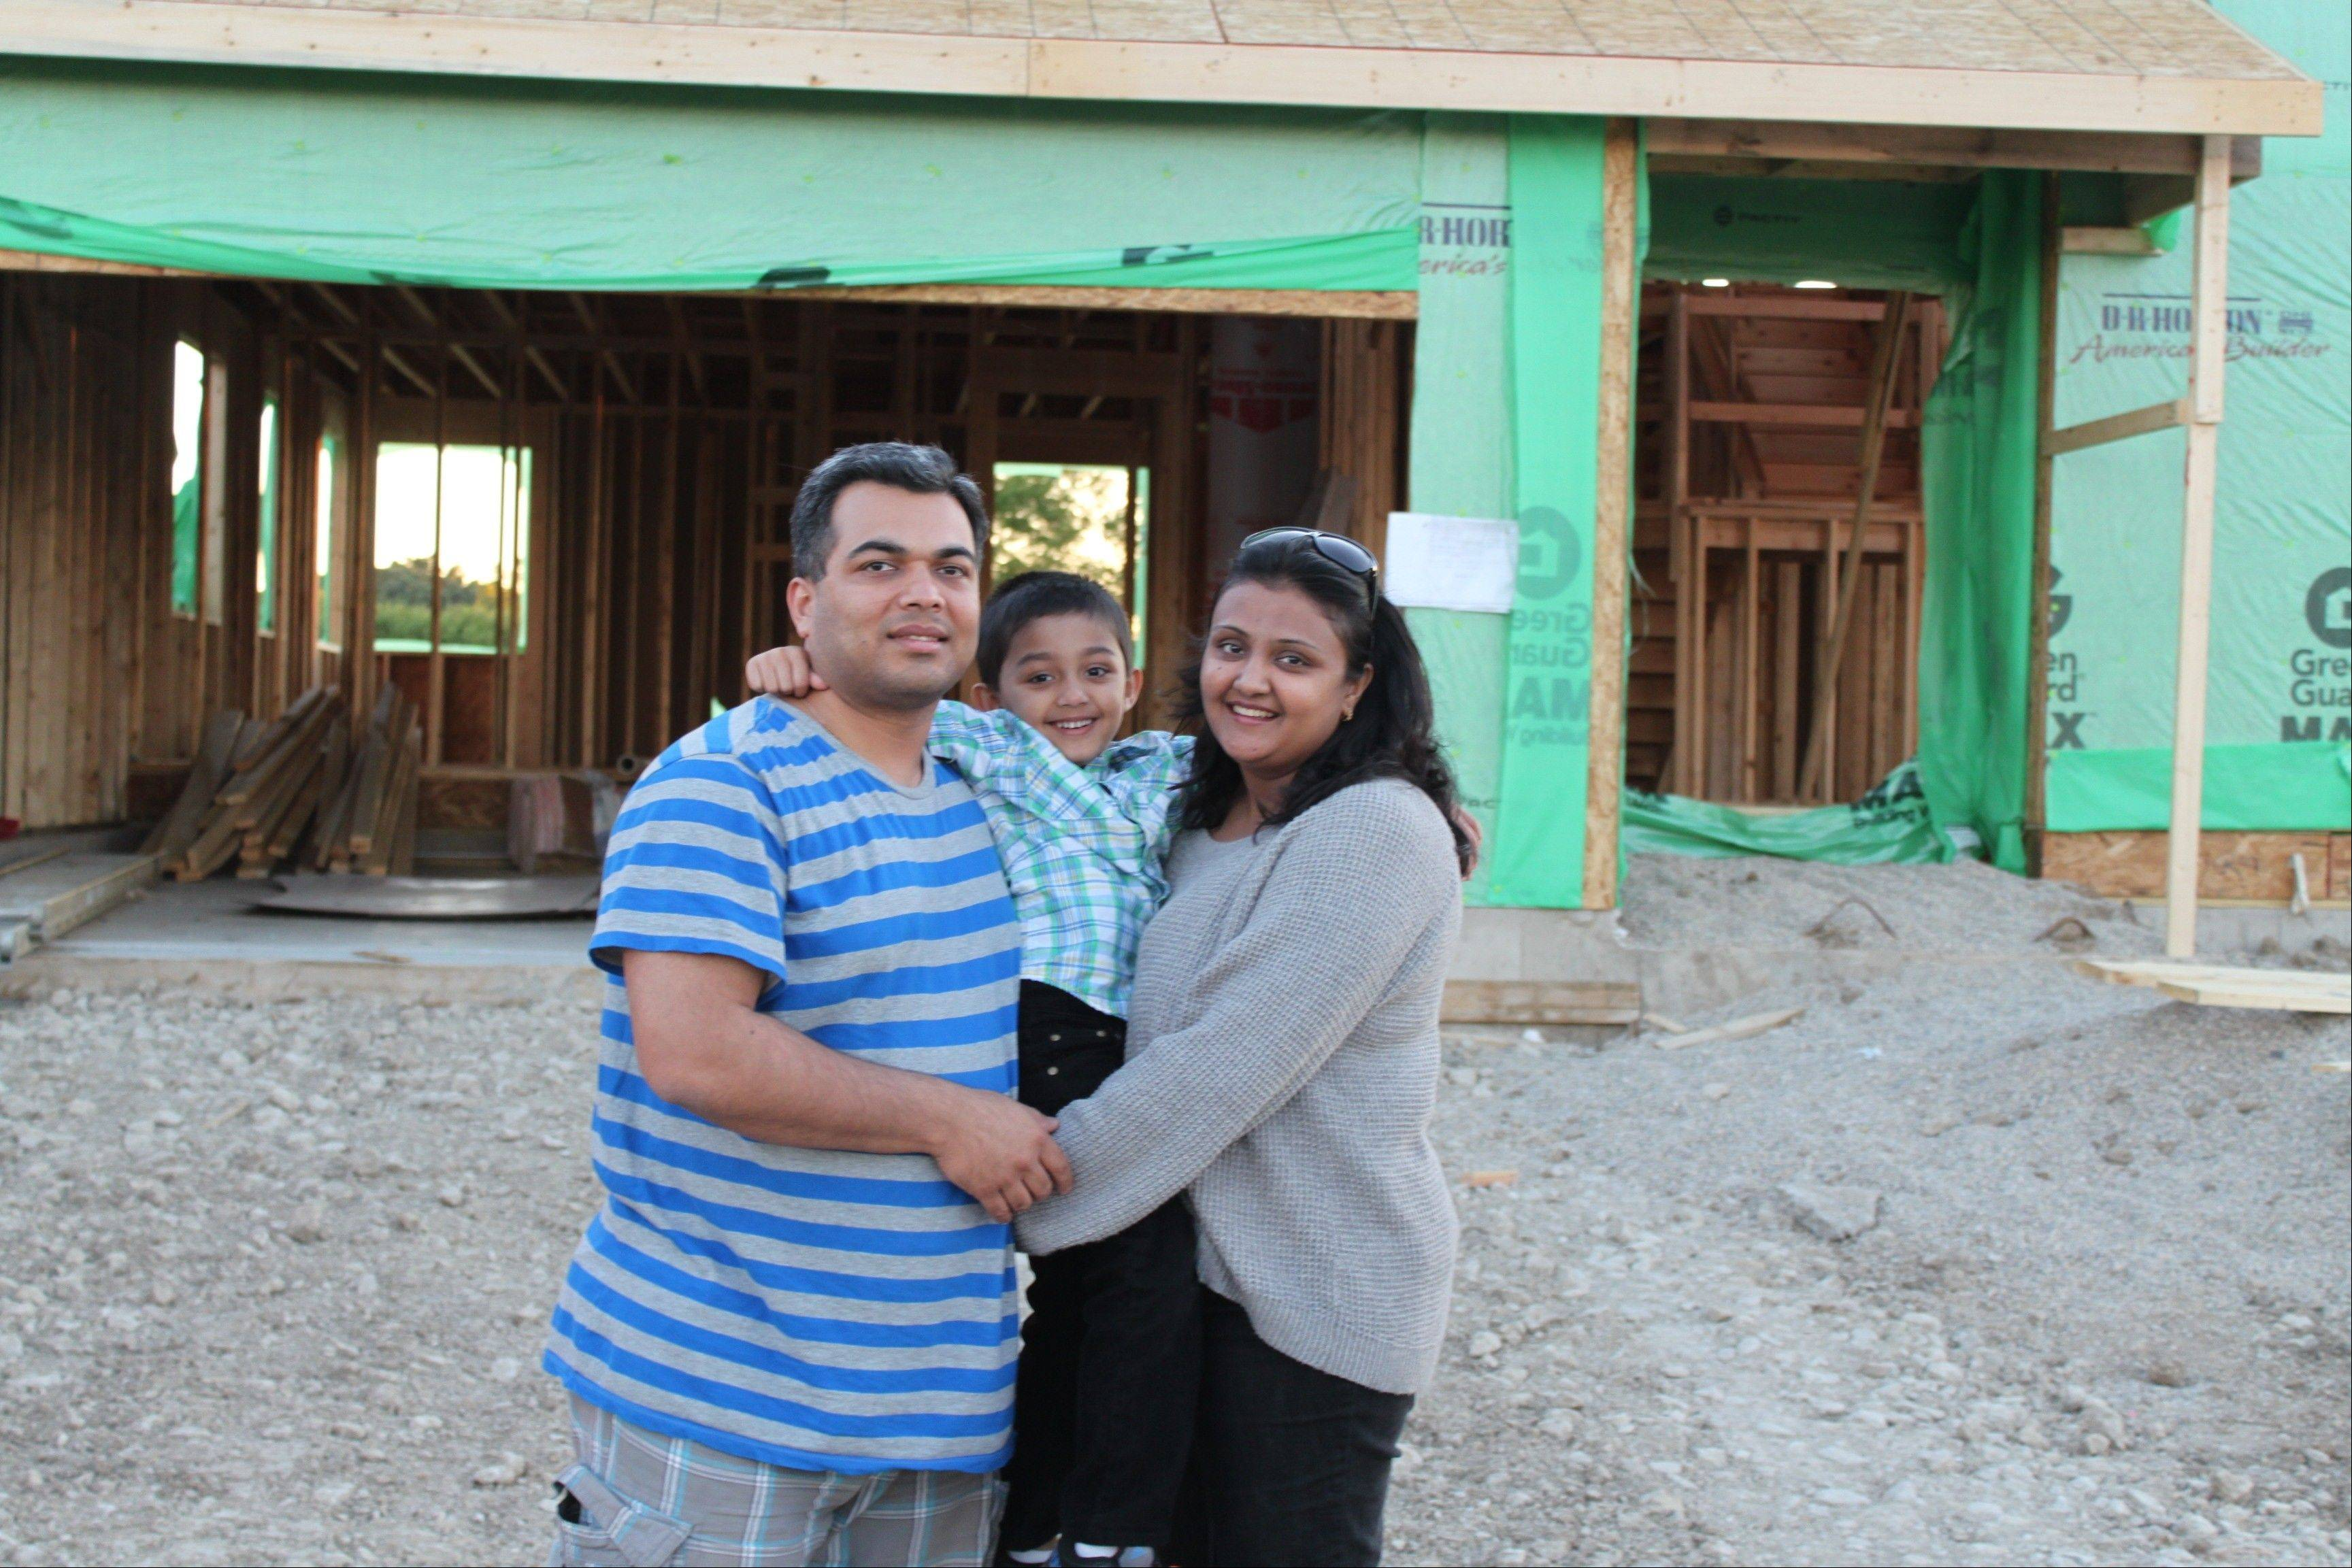 Pushpendu and Vidhi Patel and their son Aryan will soon move from Des Plaines to this home in D.R. Horton's Symphony Meadows subdivision in Volo.